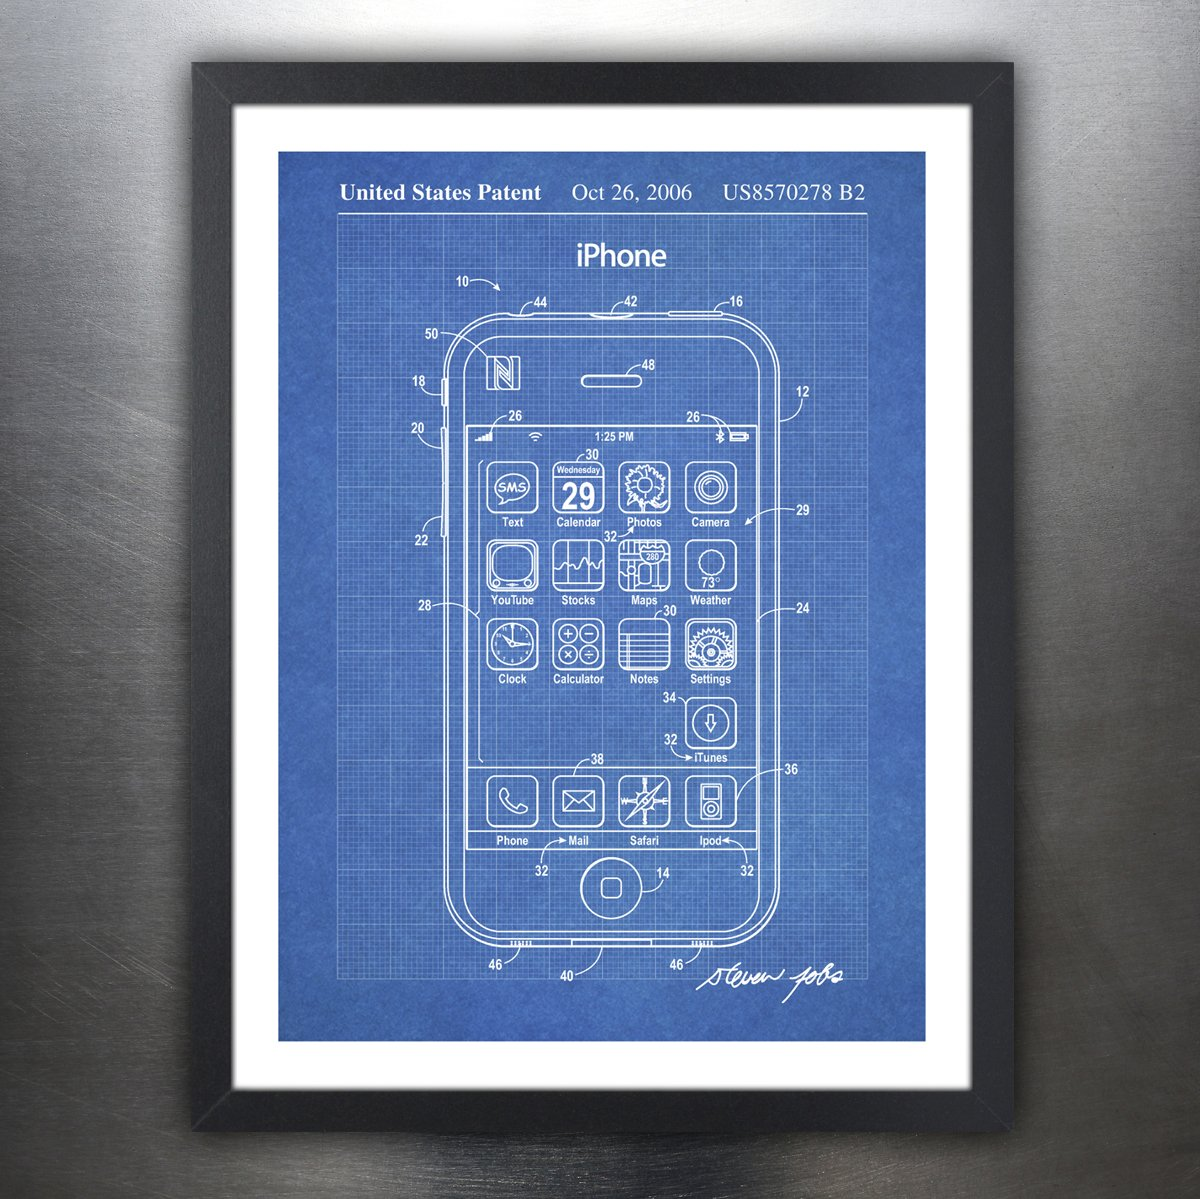 Amazon iphone invention poster 2006 patent art handmade amazon iphone invention poster 2006 patent art handmade gicle gallery print unframed 18x24blueprint posters prints malvernweather Choice Image